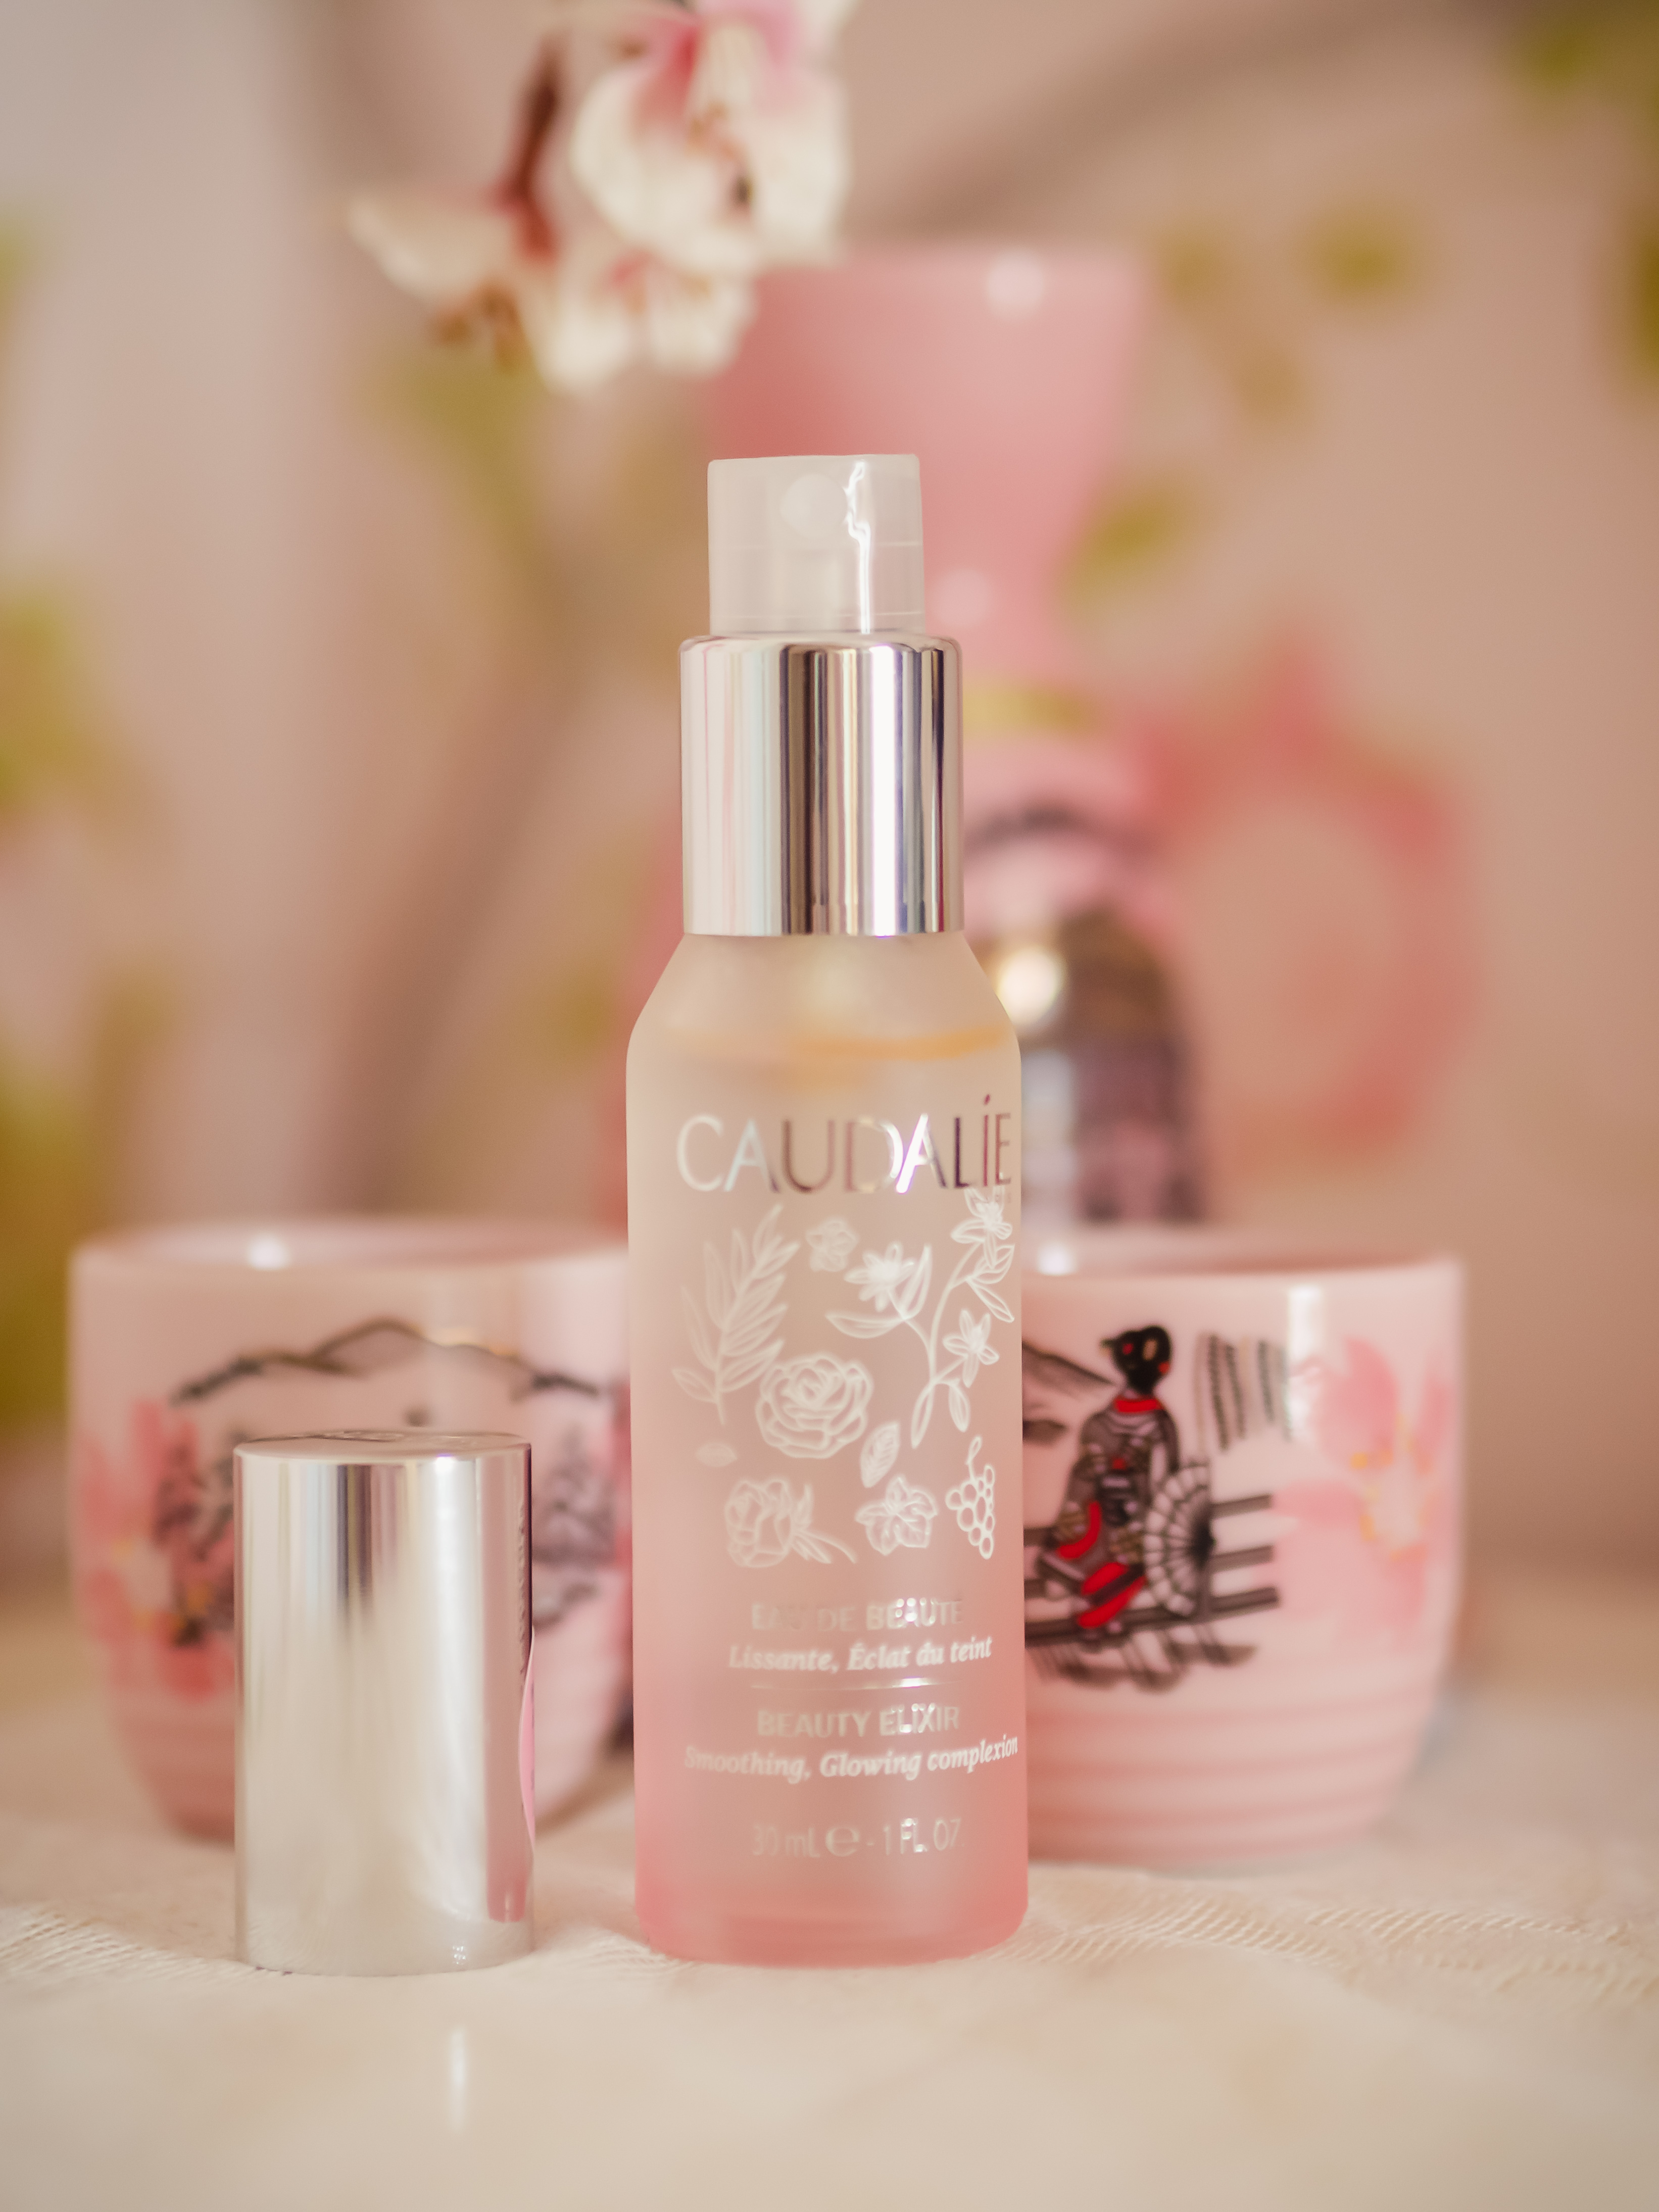 Caudalie-Beauty-Elixir-Limited-Edition-Summer-Bottle